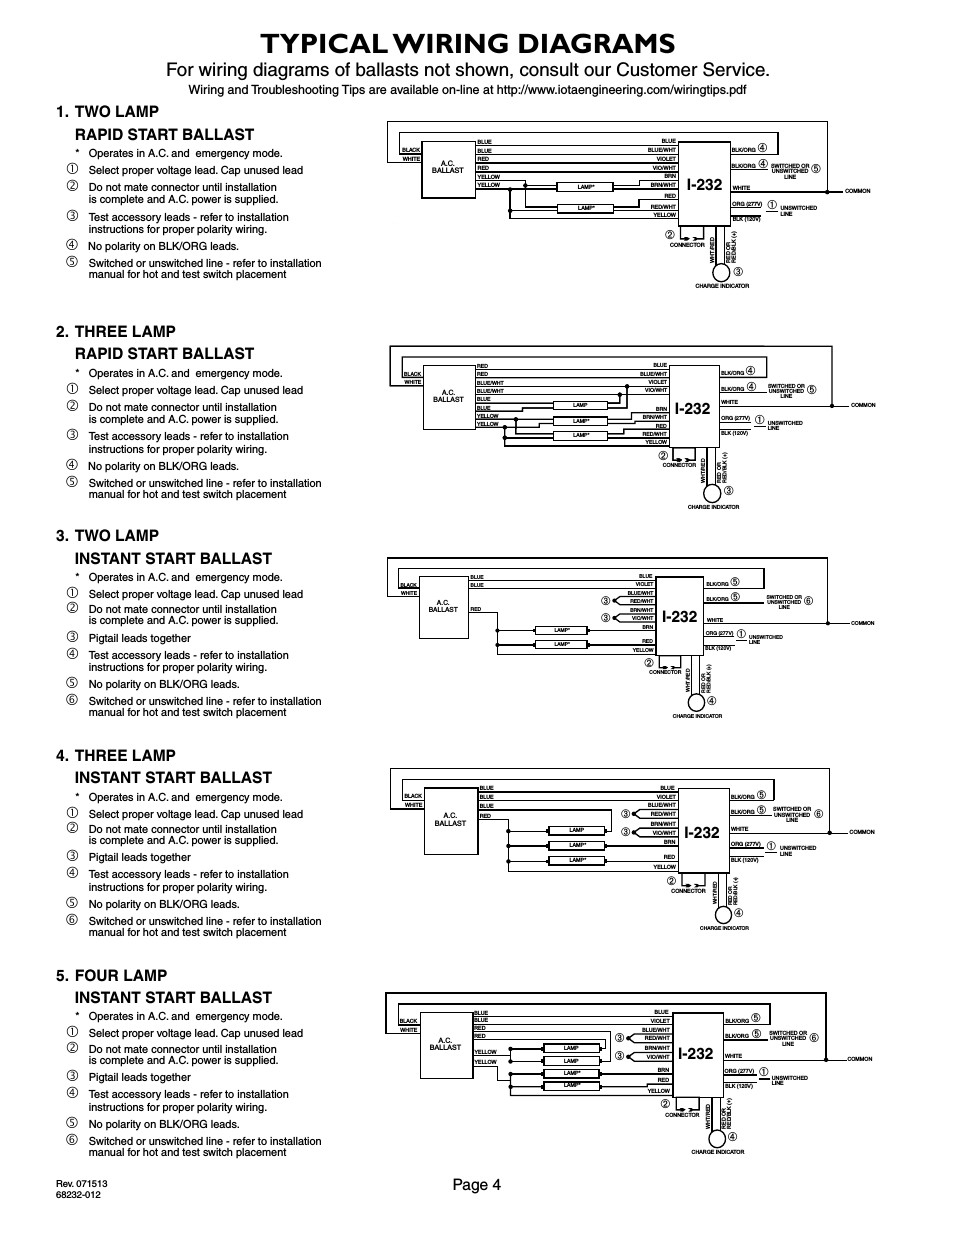 Iota Emergency Ballast Wiring Diagram Free Wiring Diagram